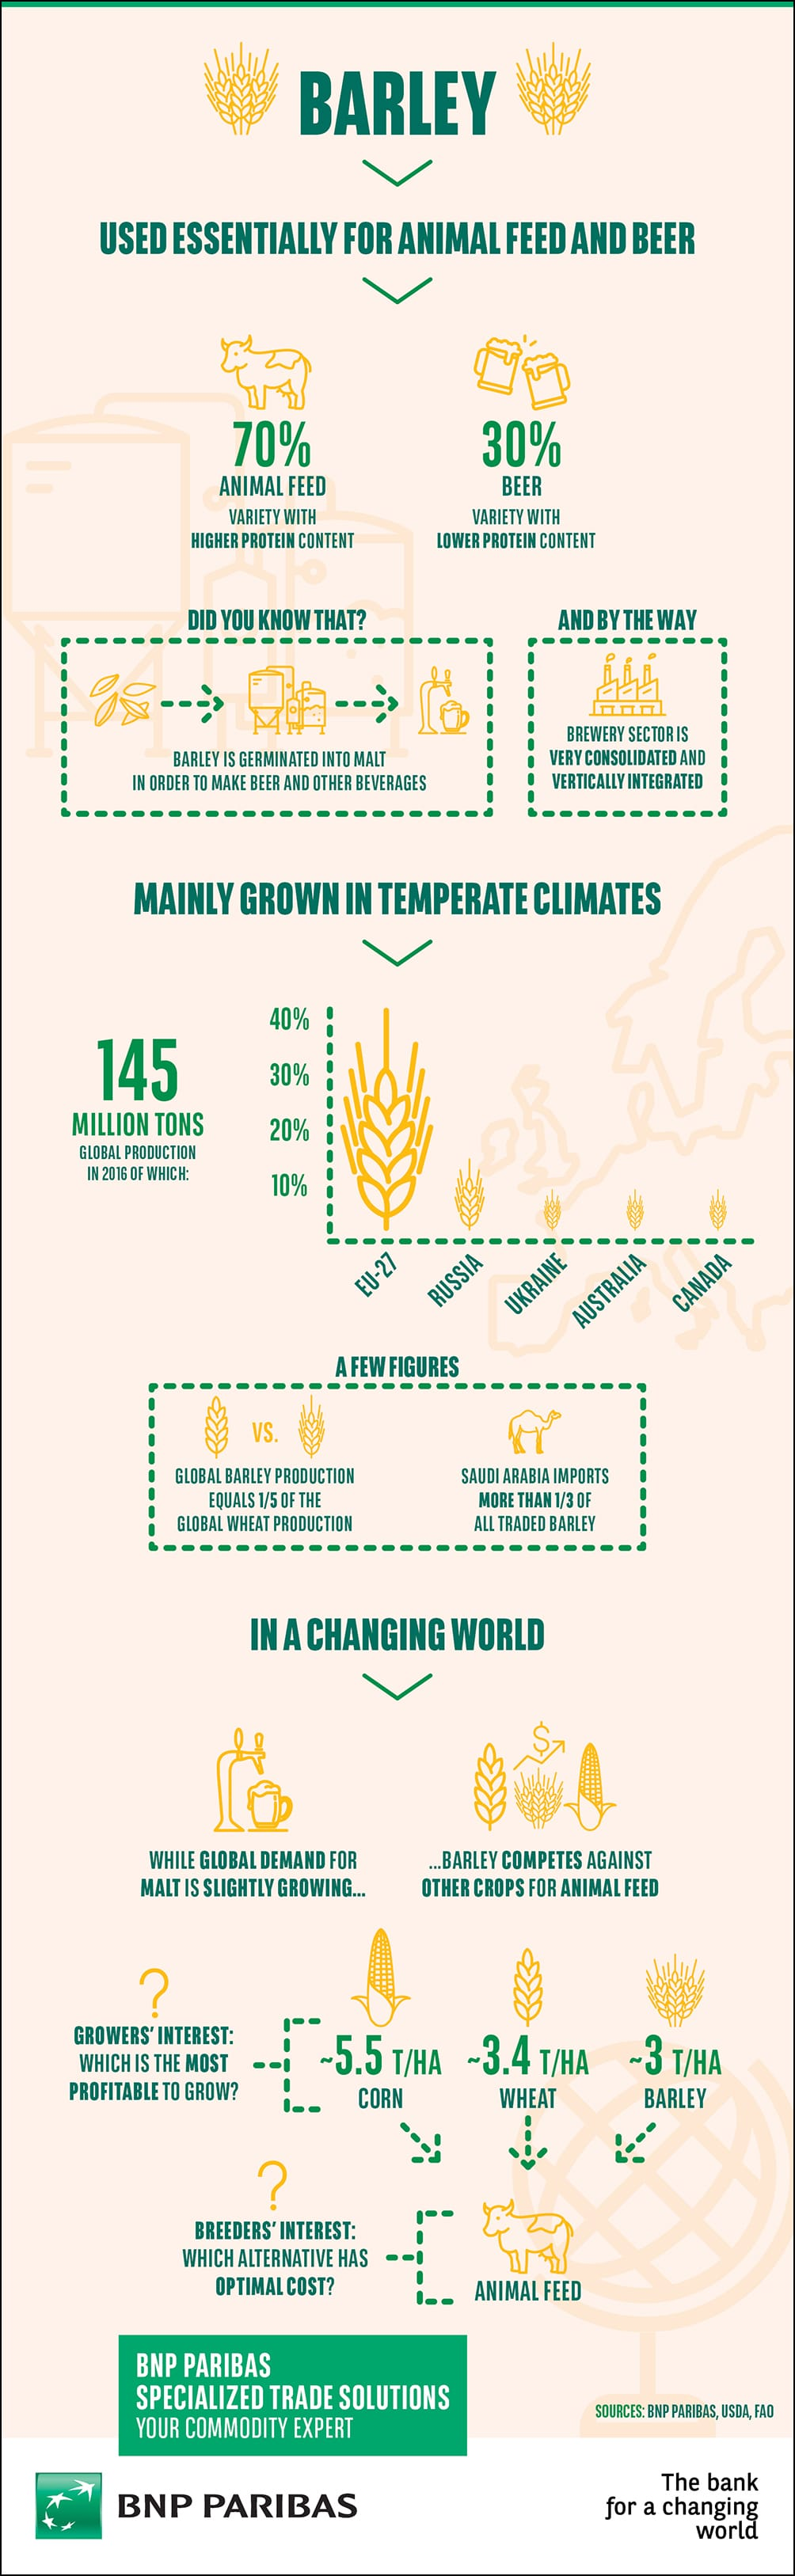 Barley is used for malt beer and animal feed, with complex trade patterns impacting production and demand.